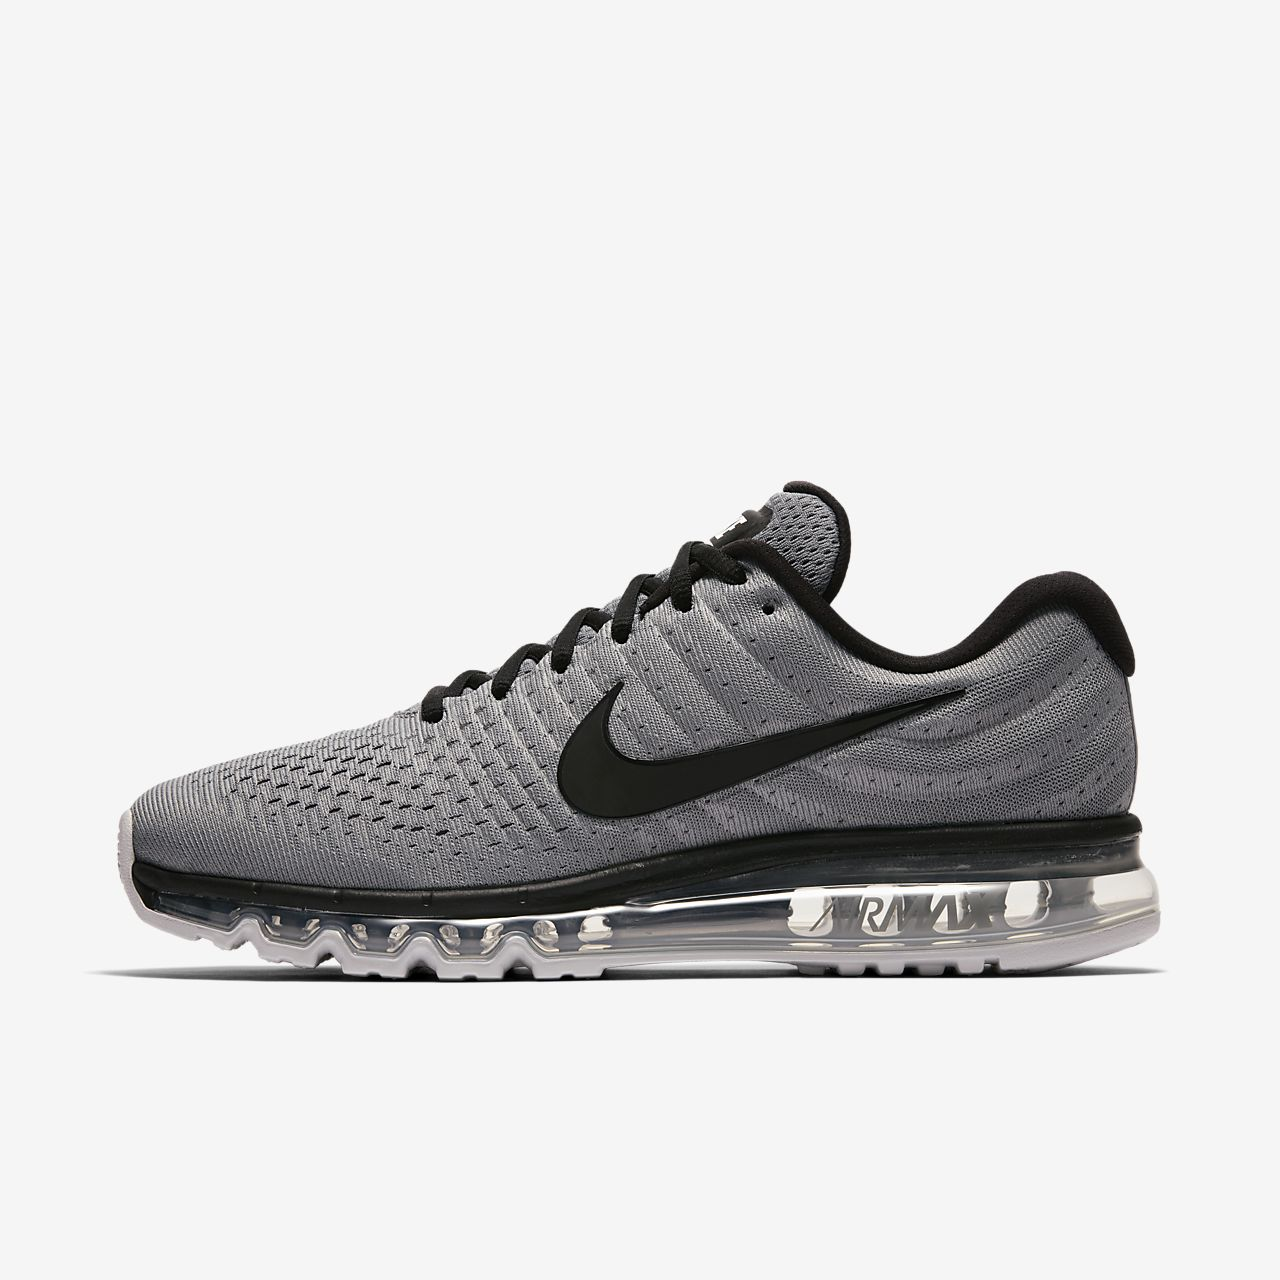 nike air max shop online romania